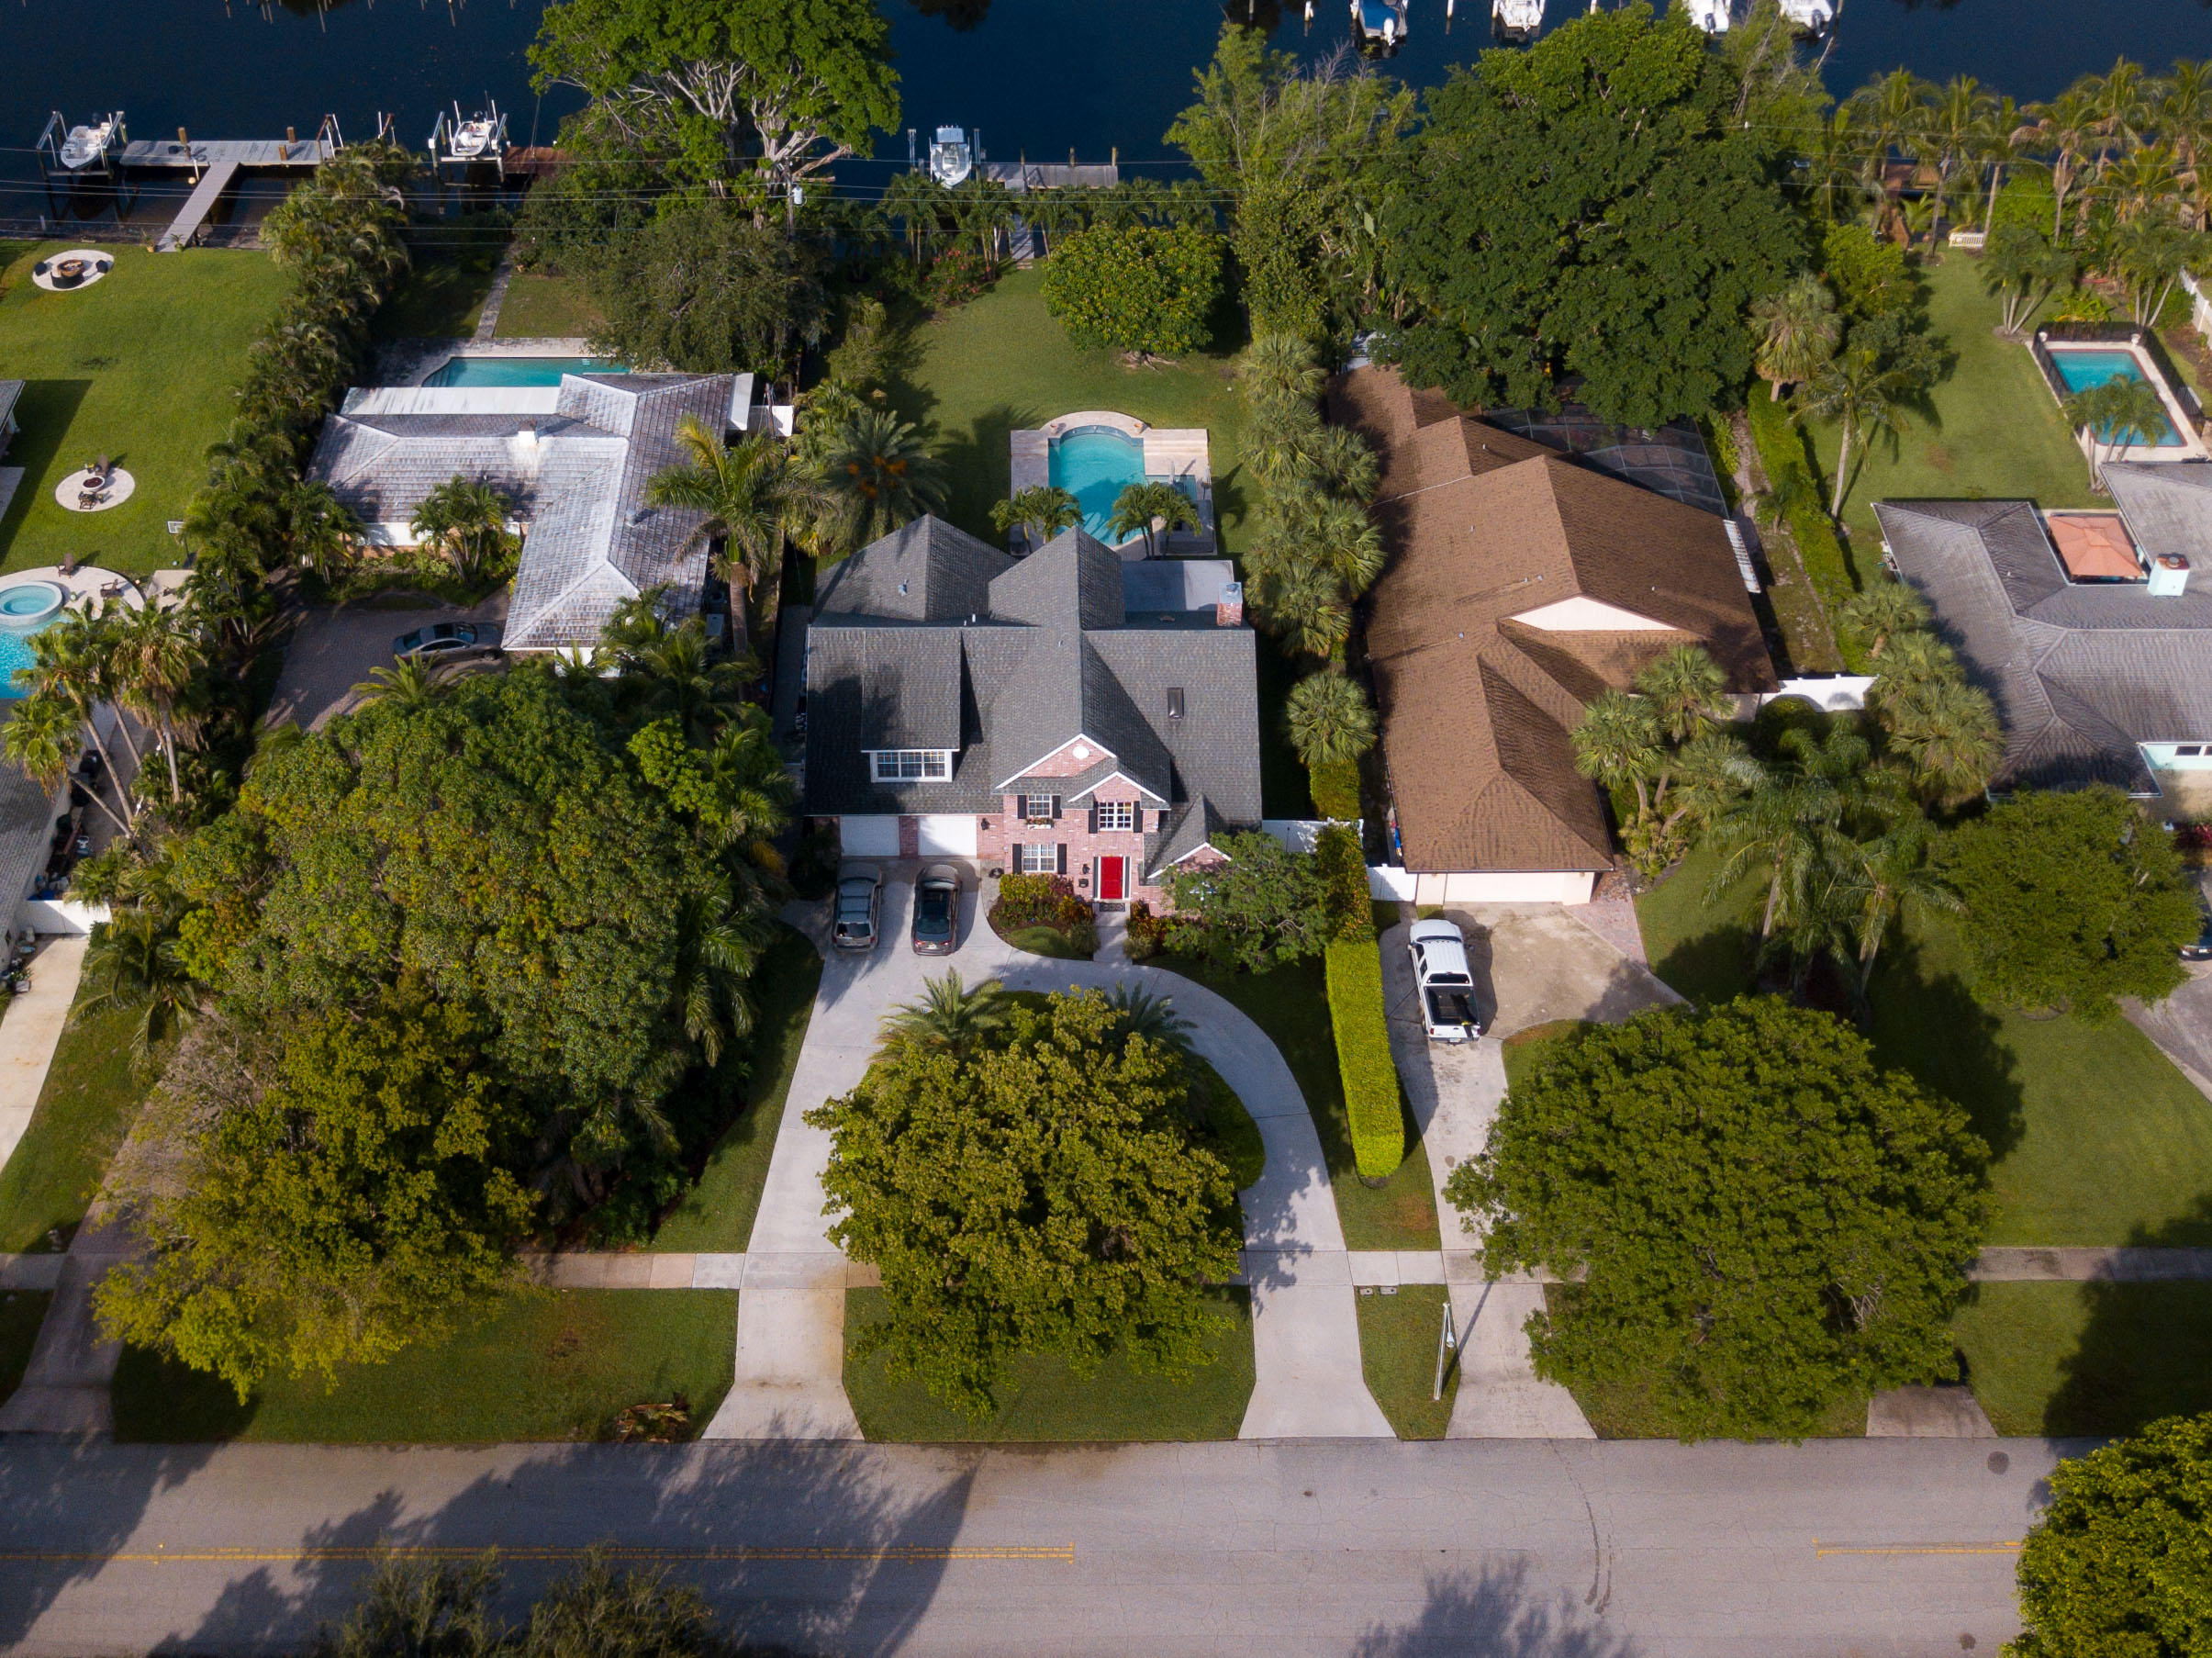 568 Anchorage Drive, North Palm Beach, Florida 33408, 4 Bedrooms Bedrooms, ,3.1 BathroomsBathrooms,A,Single family,Anchorage,RX-10437787